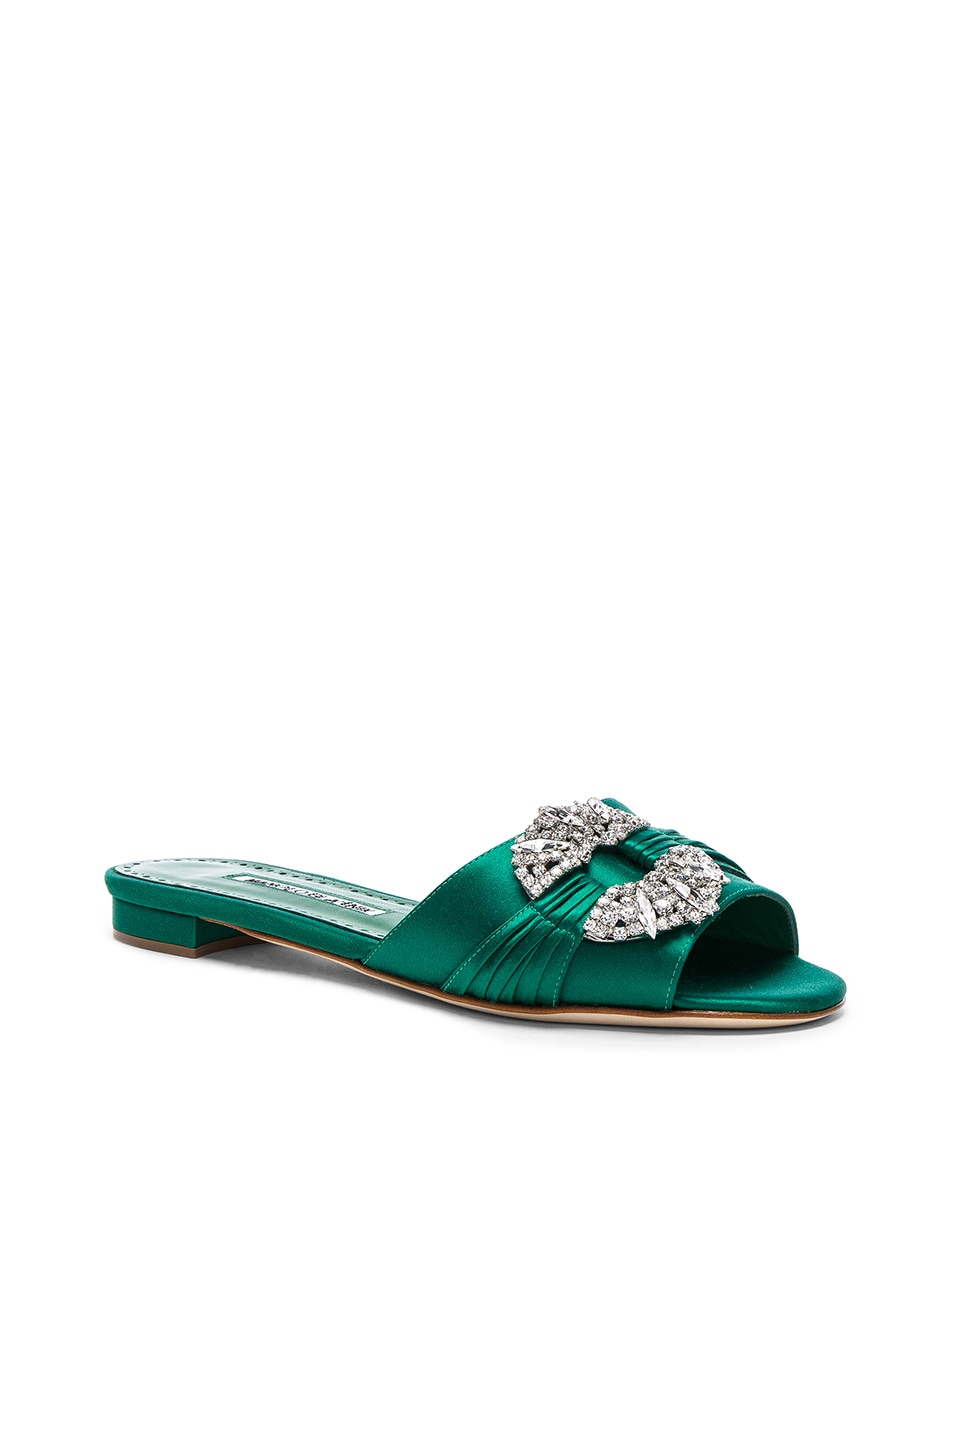 Image 2 of Manolo Blahnik Satin Pralina Slides in Green Satin